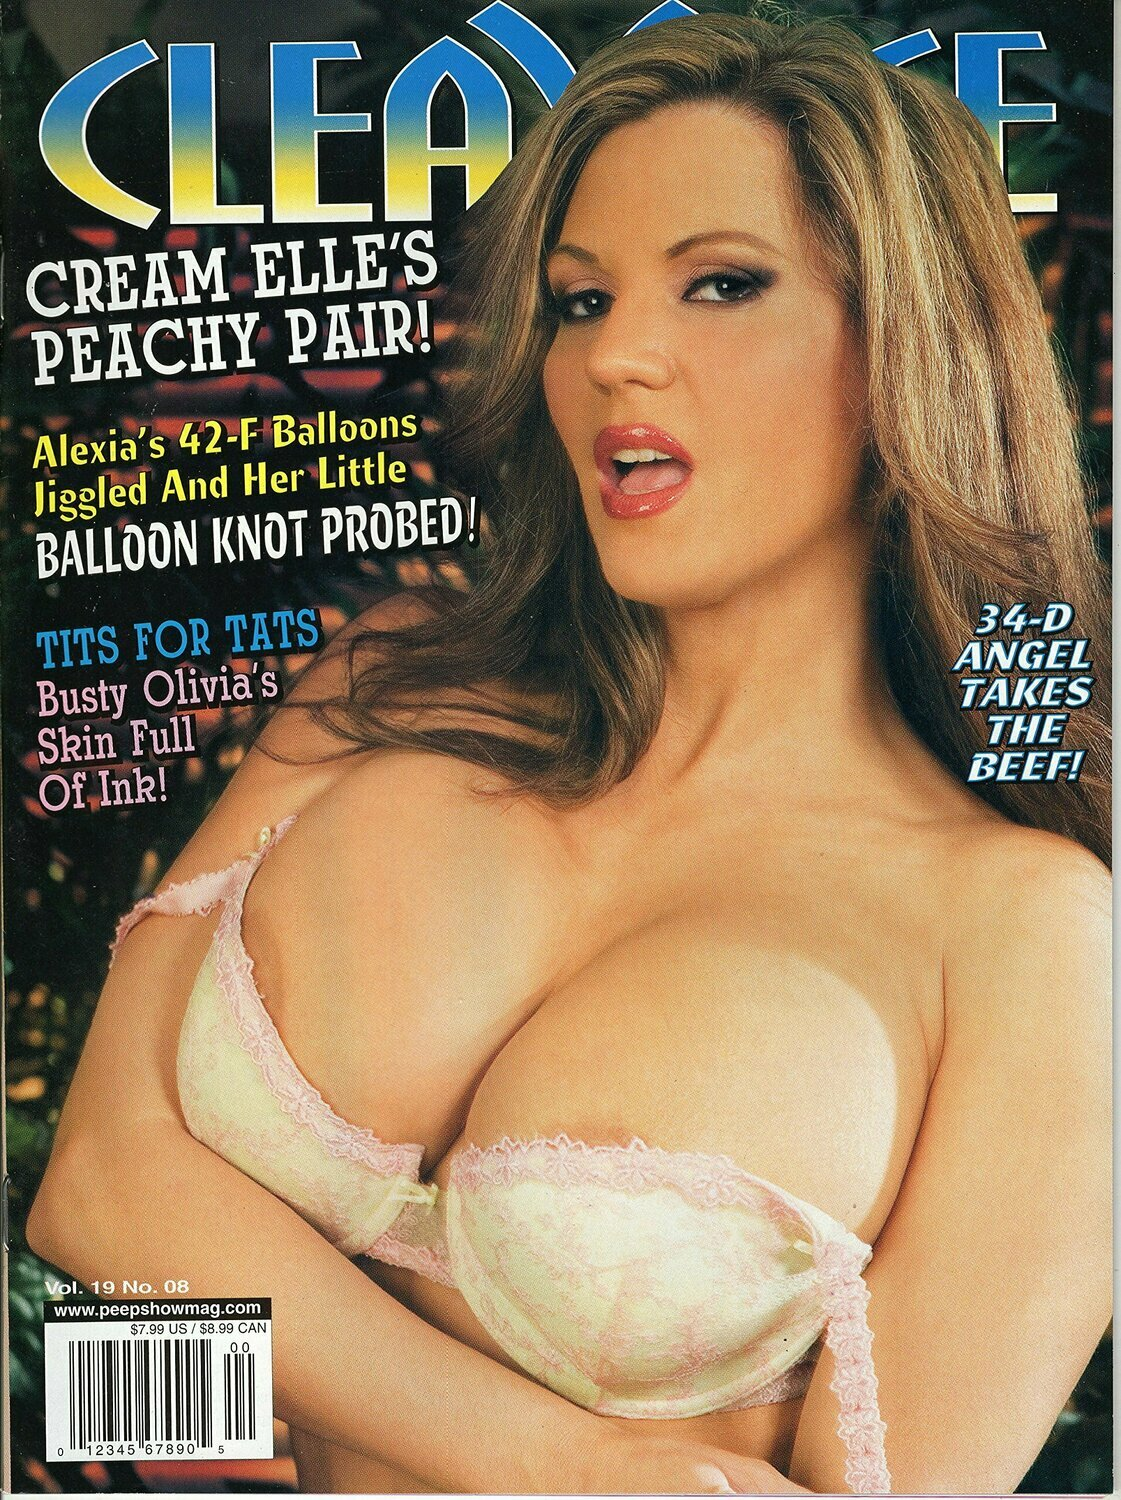 Cleavage Magazine Vol. 19 N 8 2009 BIG TITS CLASSIC SABINA LEIGH